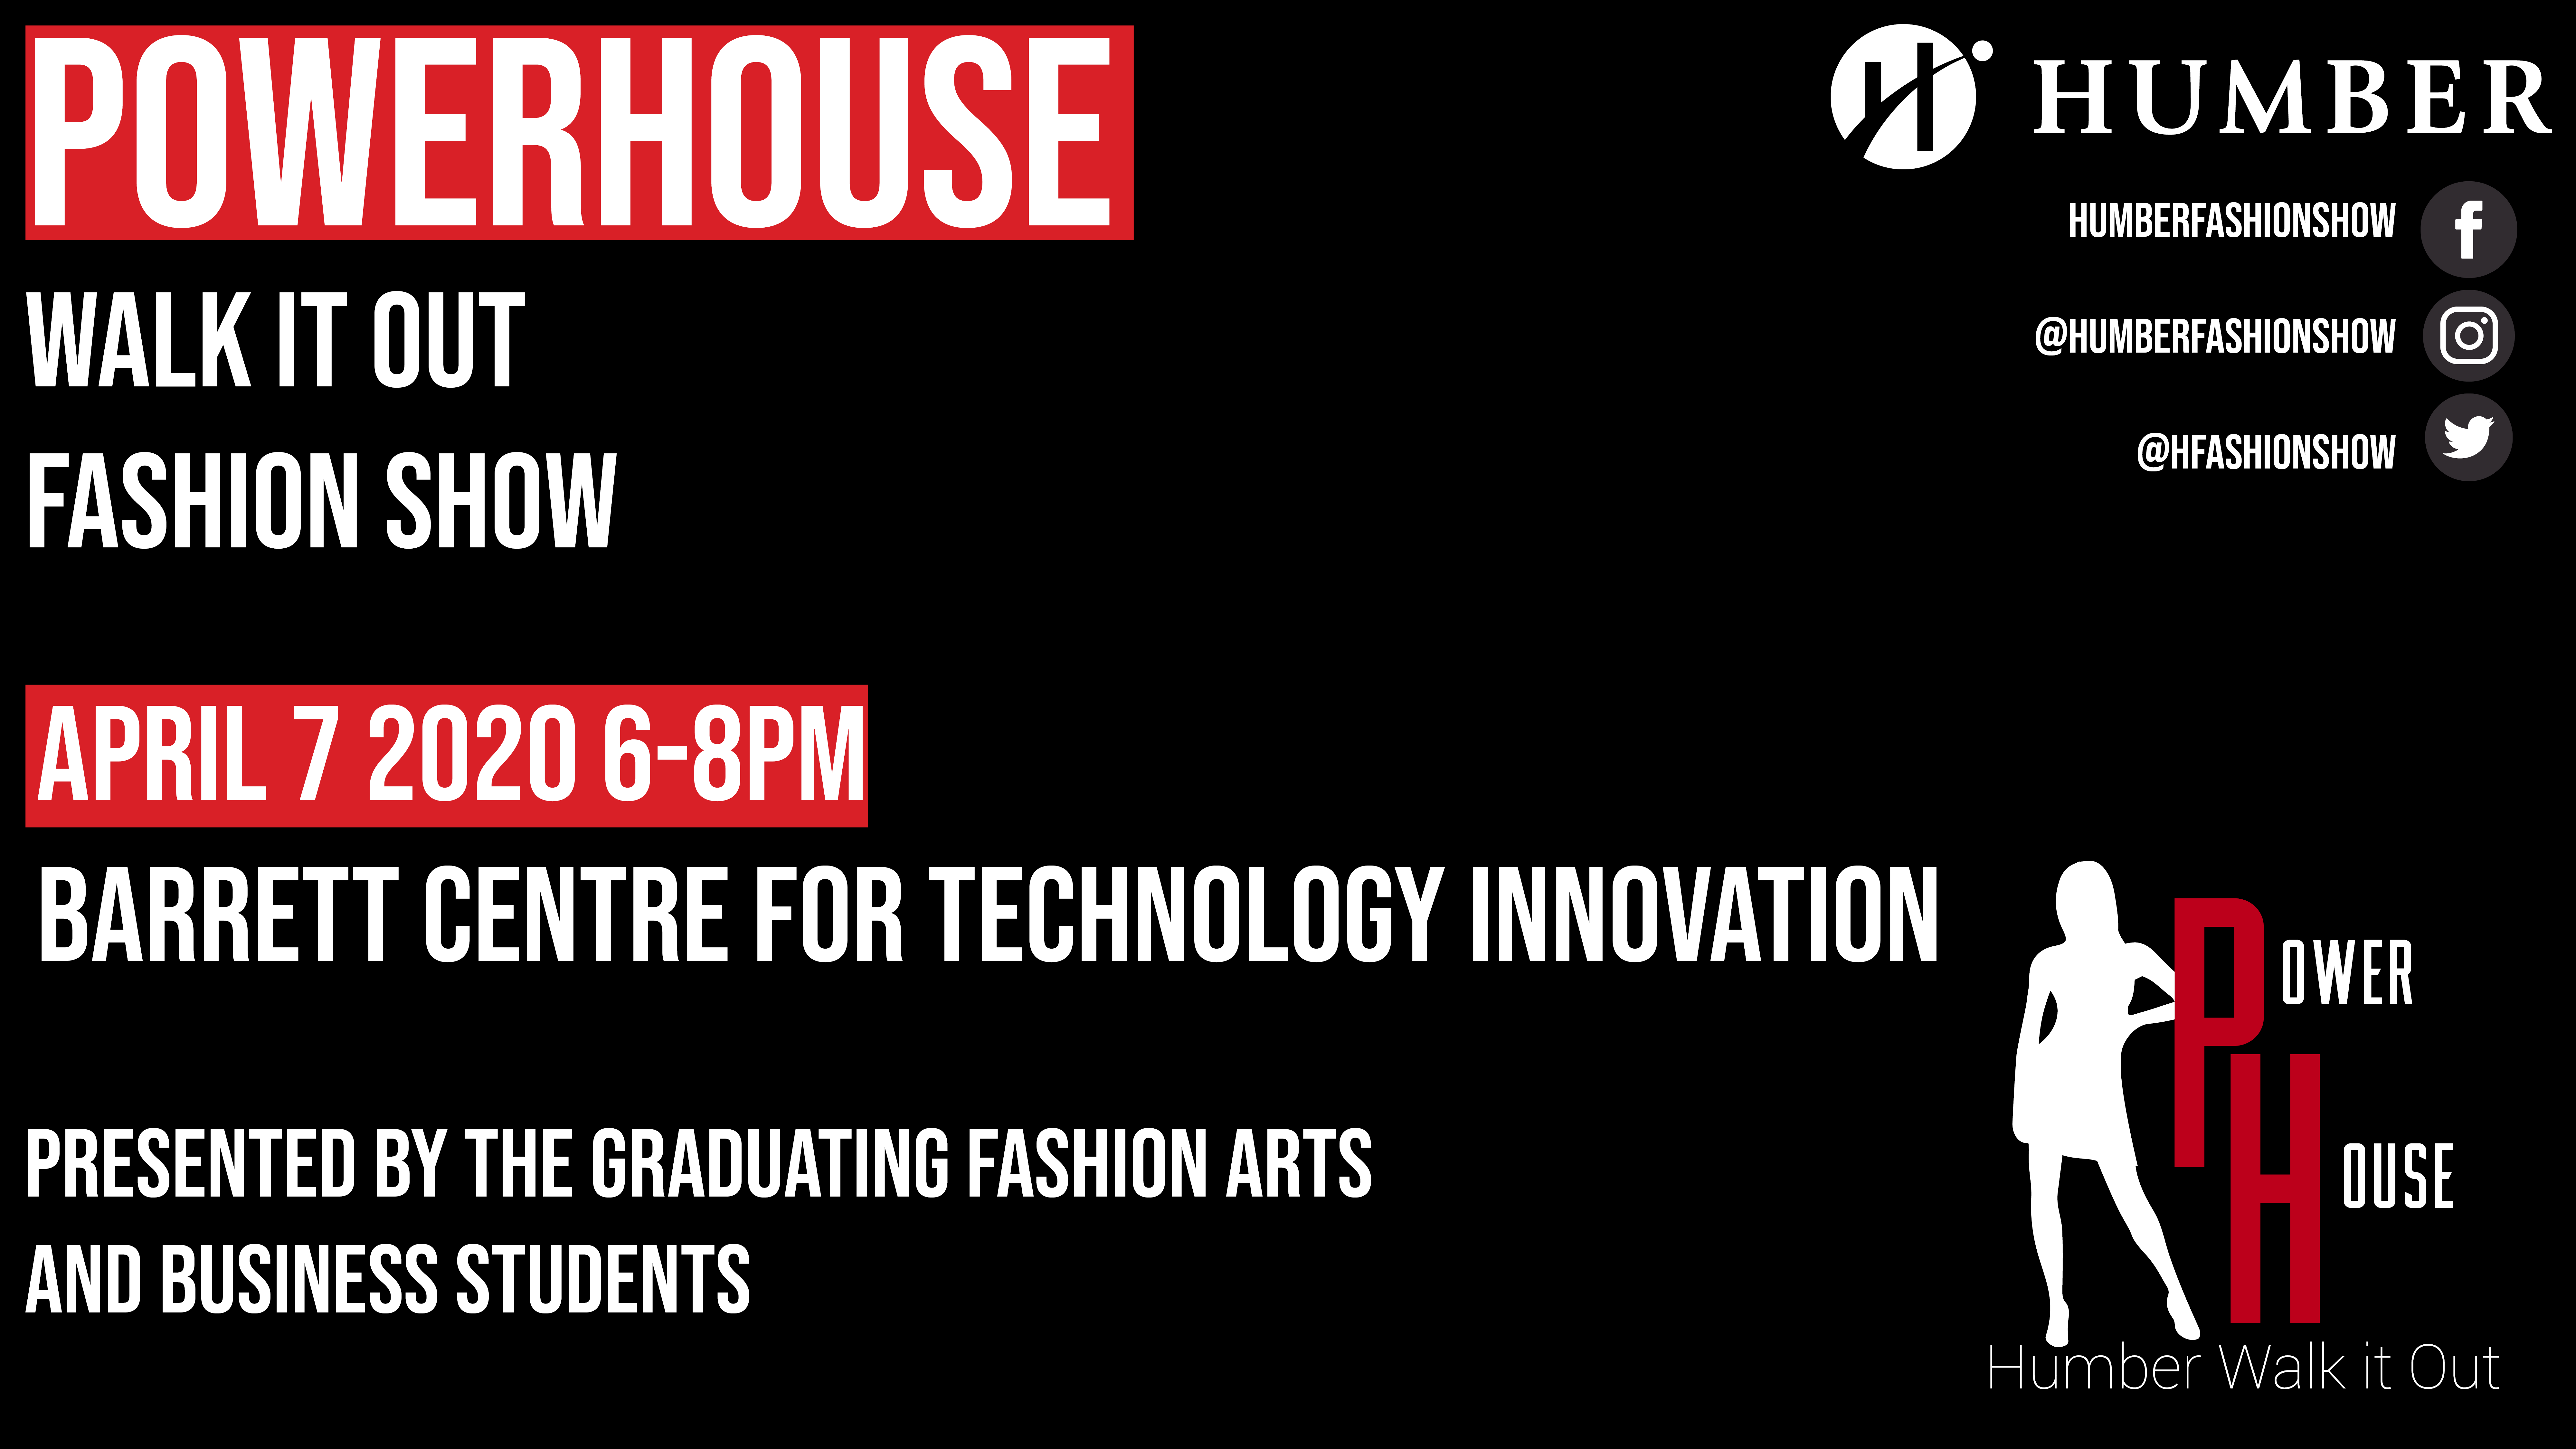 Humber Presents: The Powerhouse